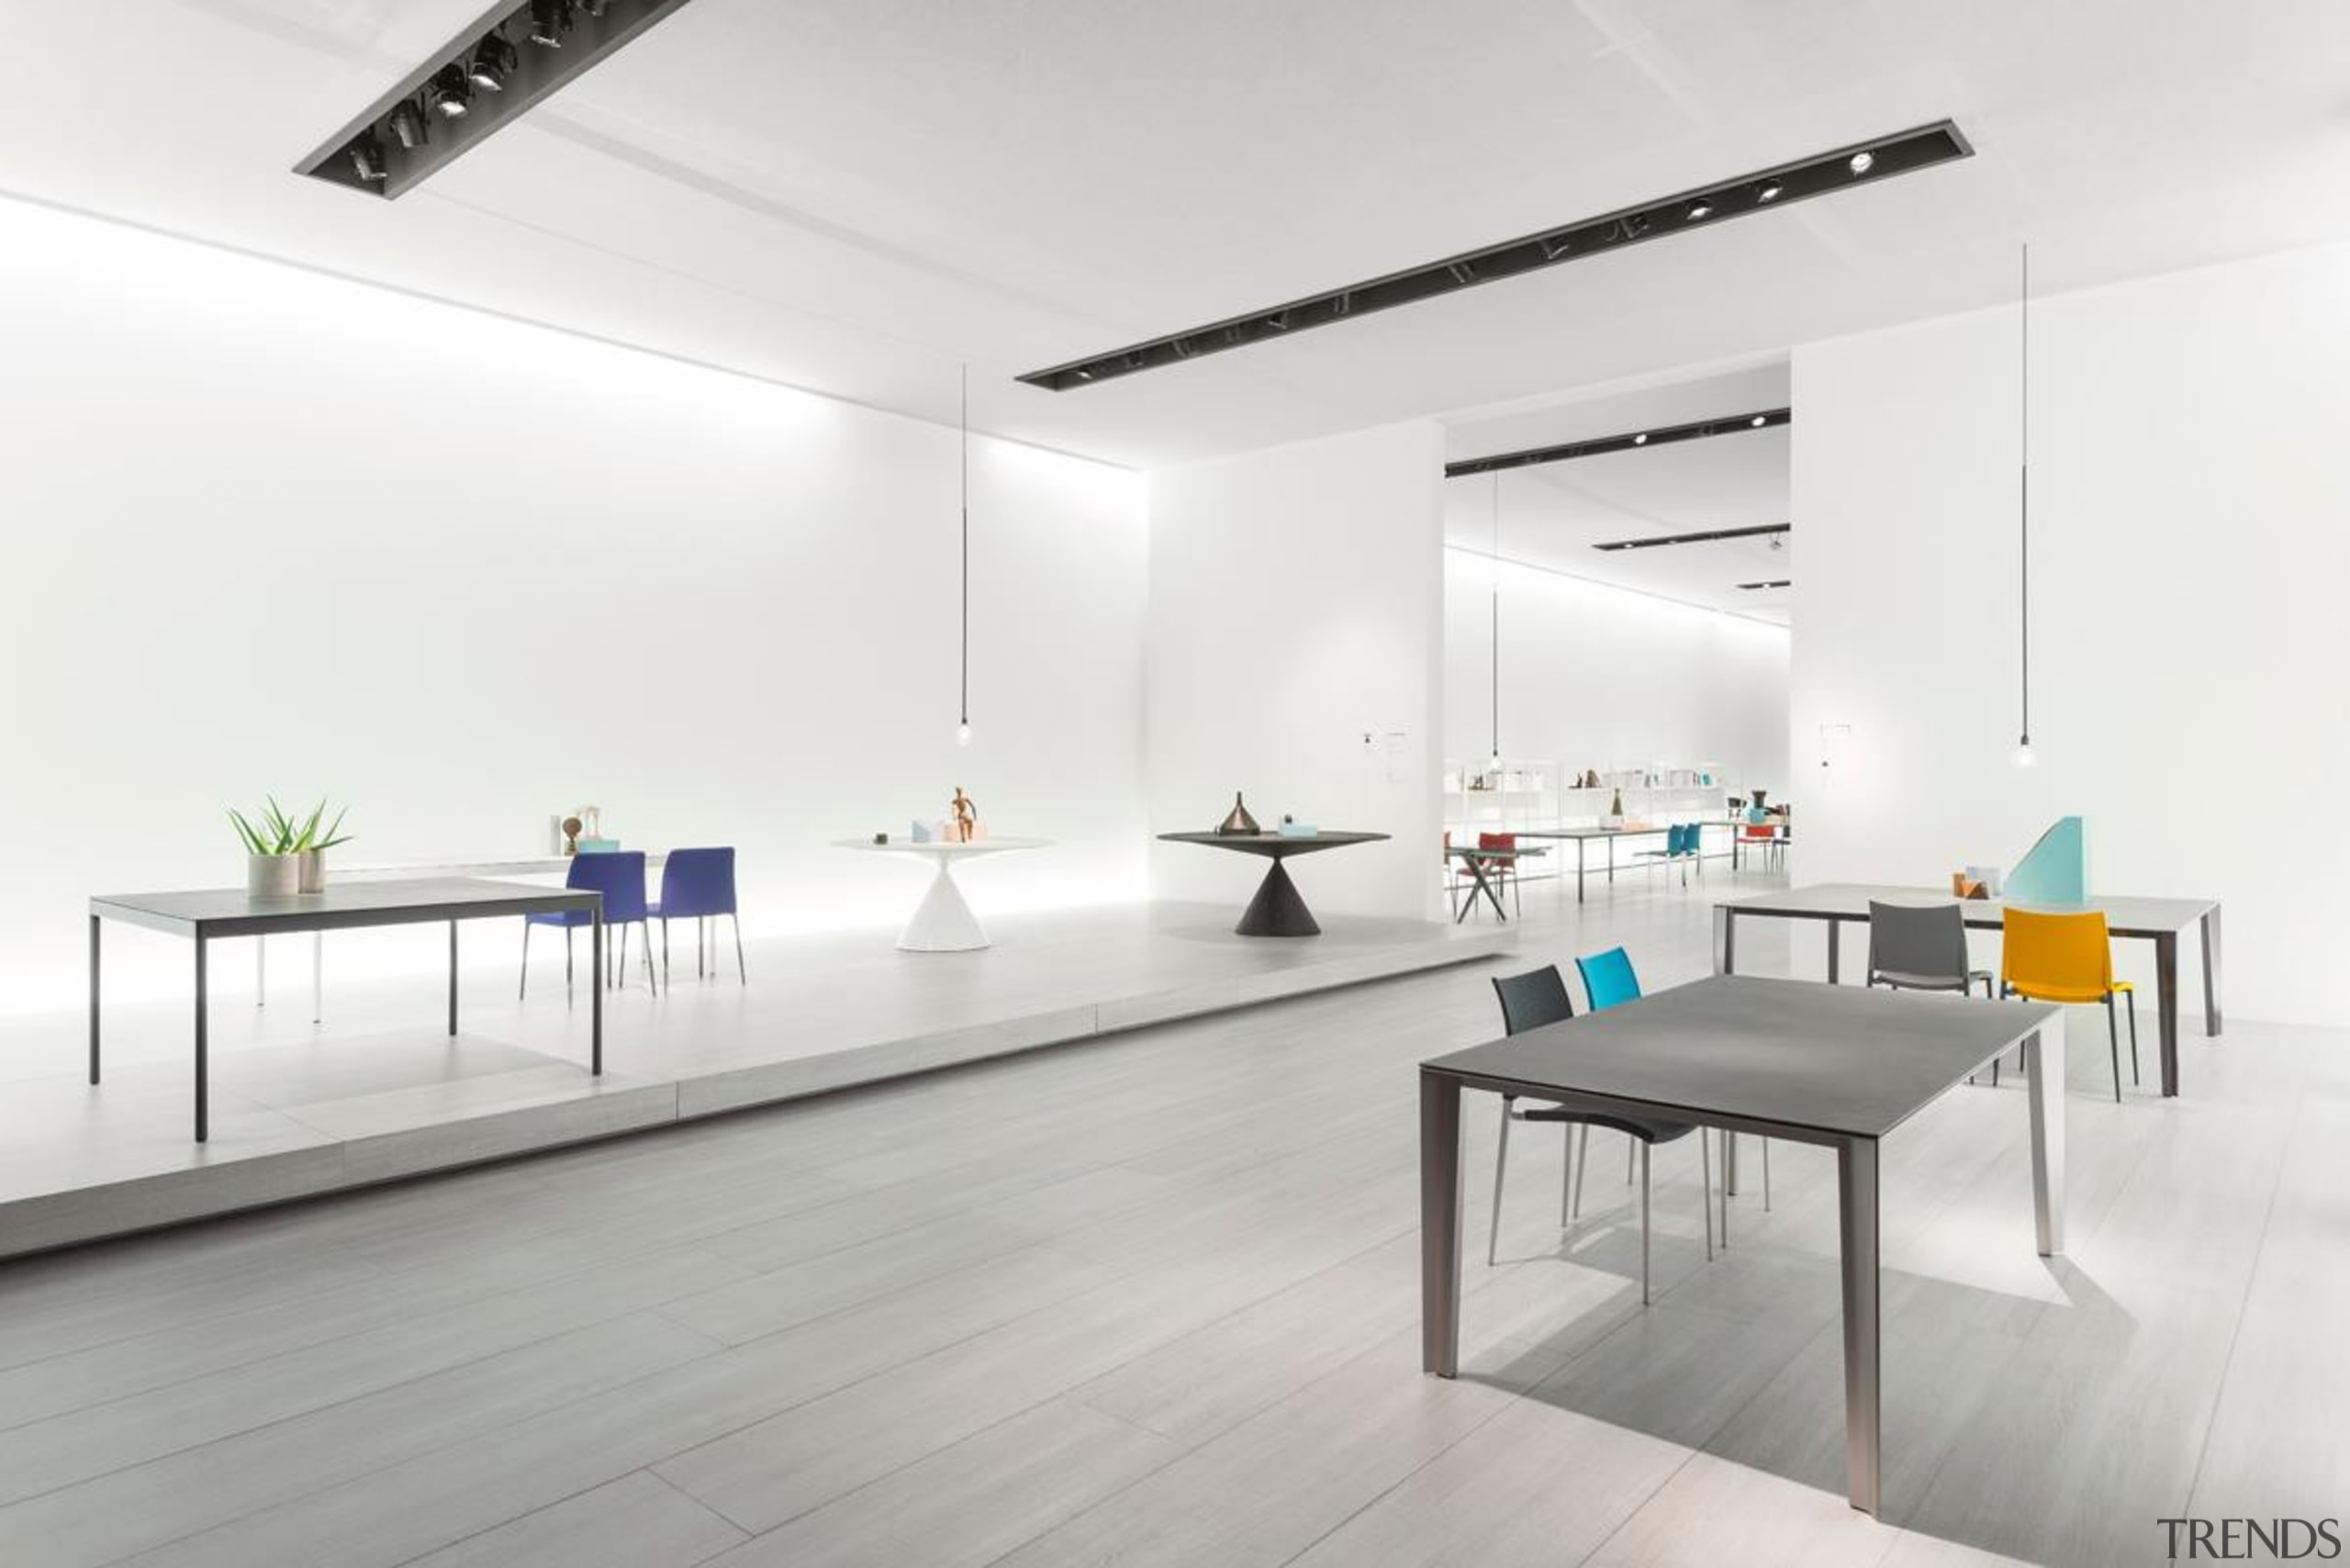 This year's International Furniture Fair Milan, featured many architecture, floor, furniture, interior design, office, table, white